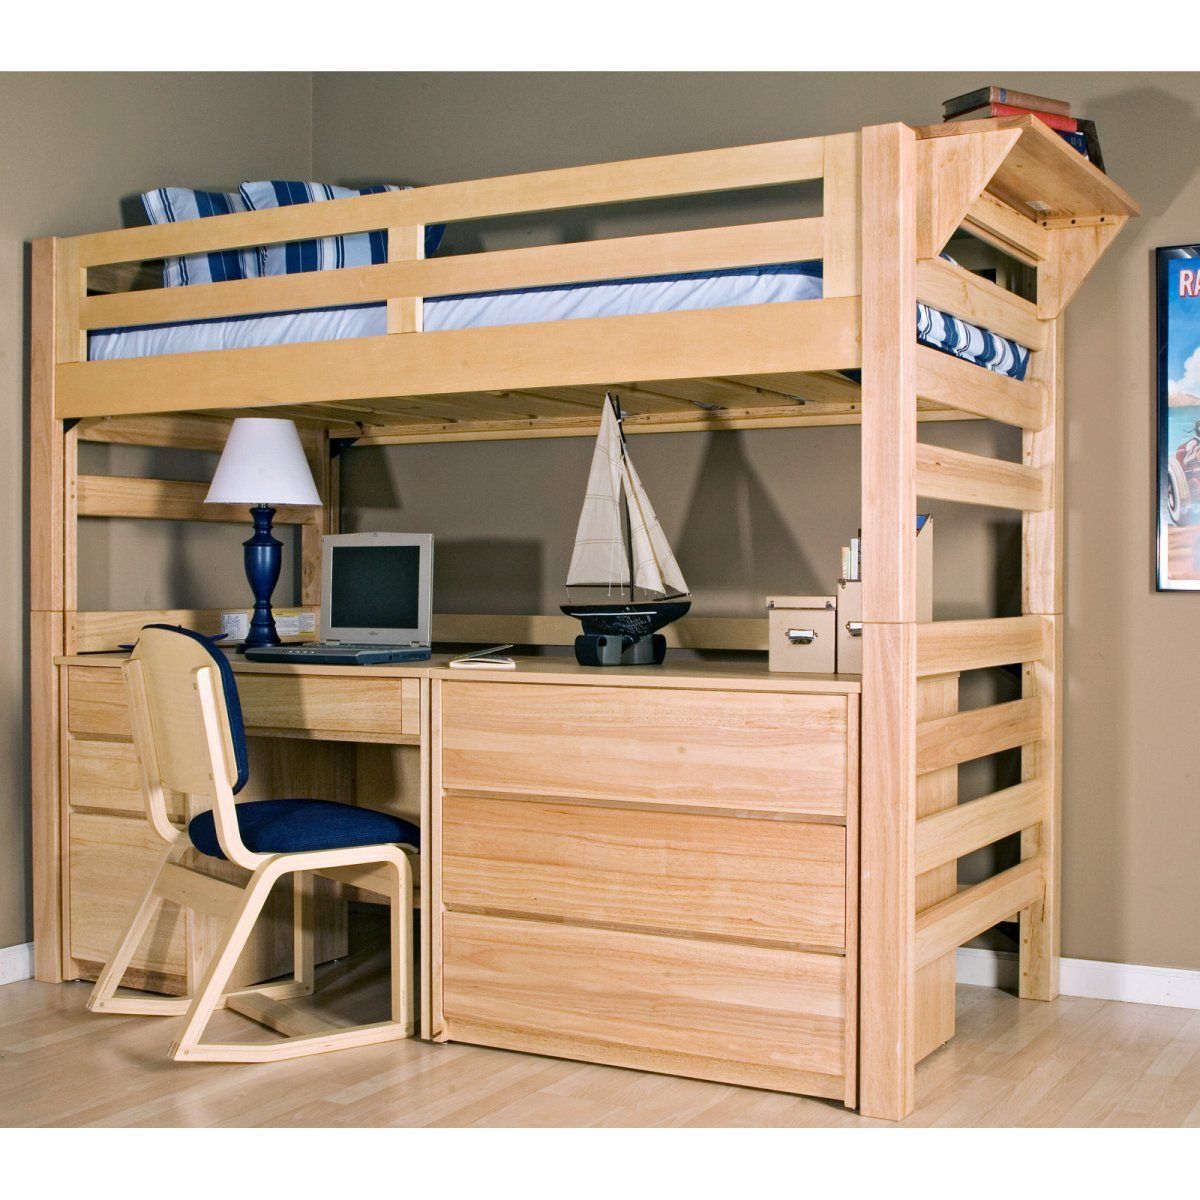 Boys loft bed with desk  Childrens Loft Bed with Desk  Living Room Wall Decor Sets Check